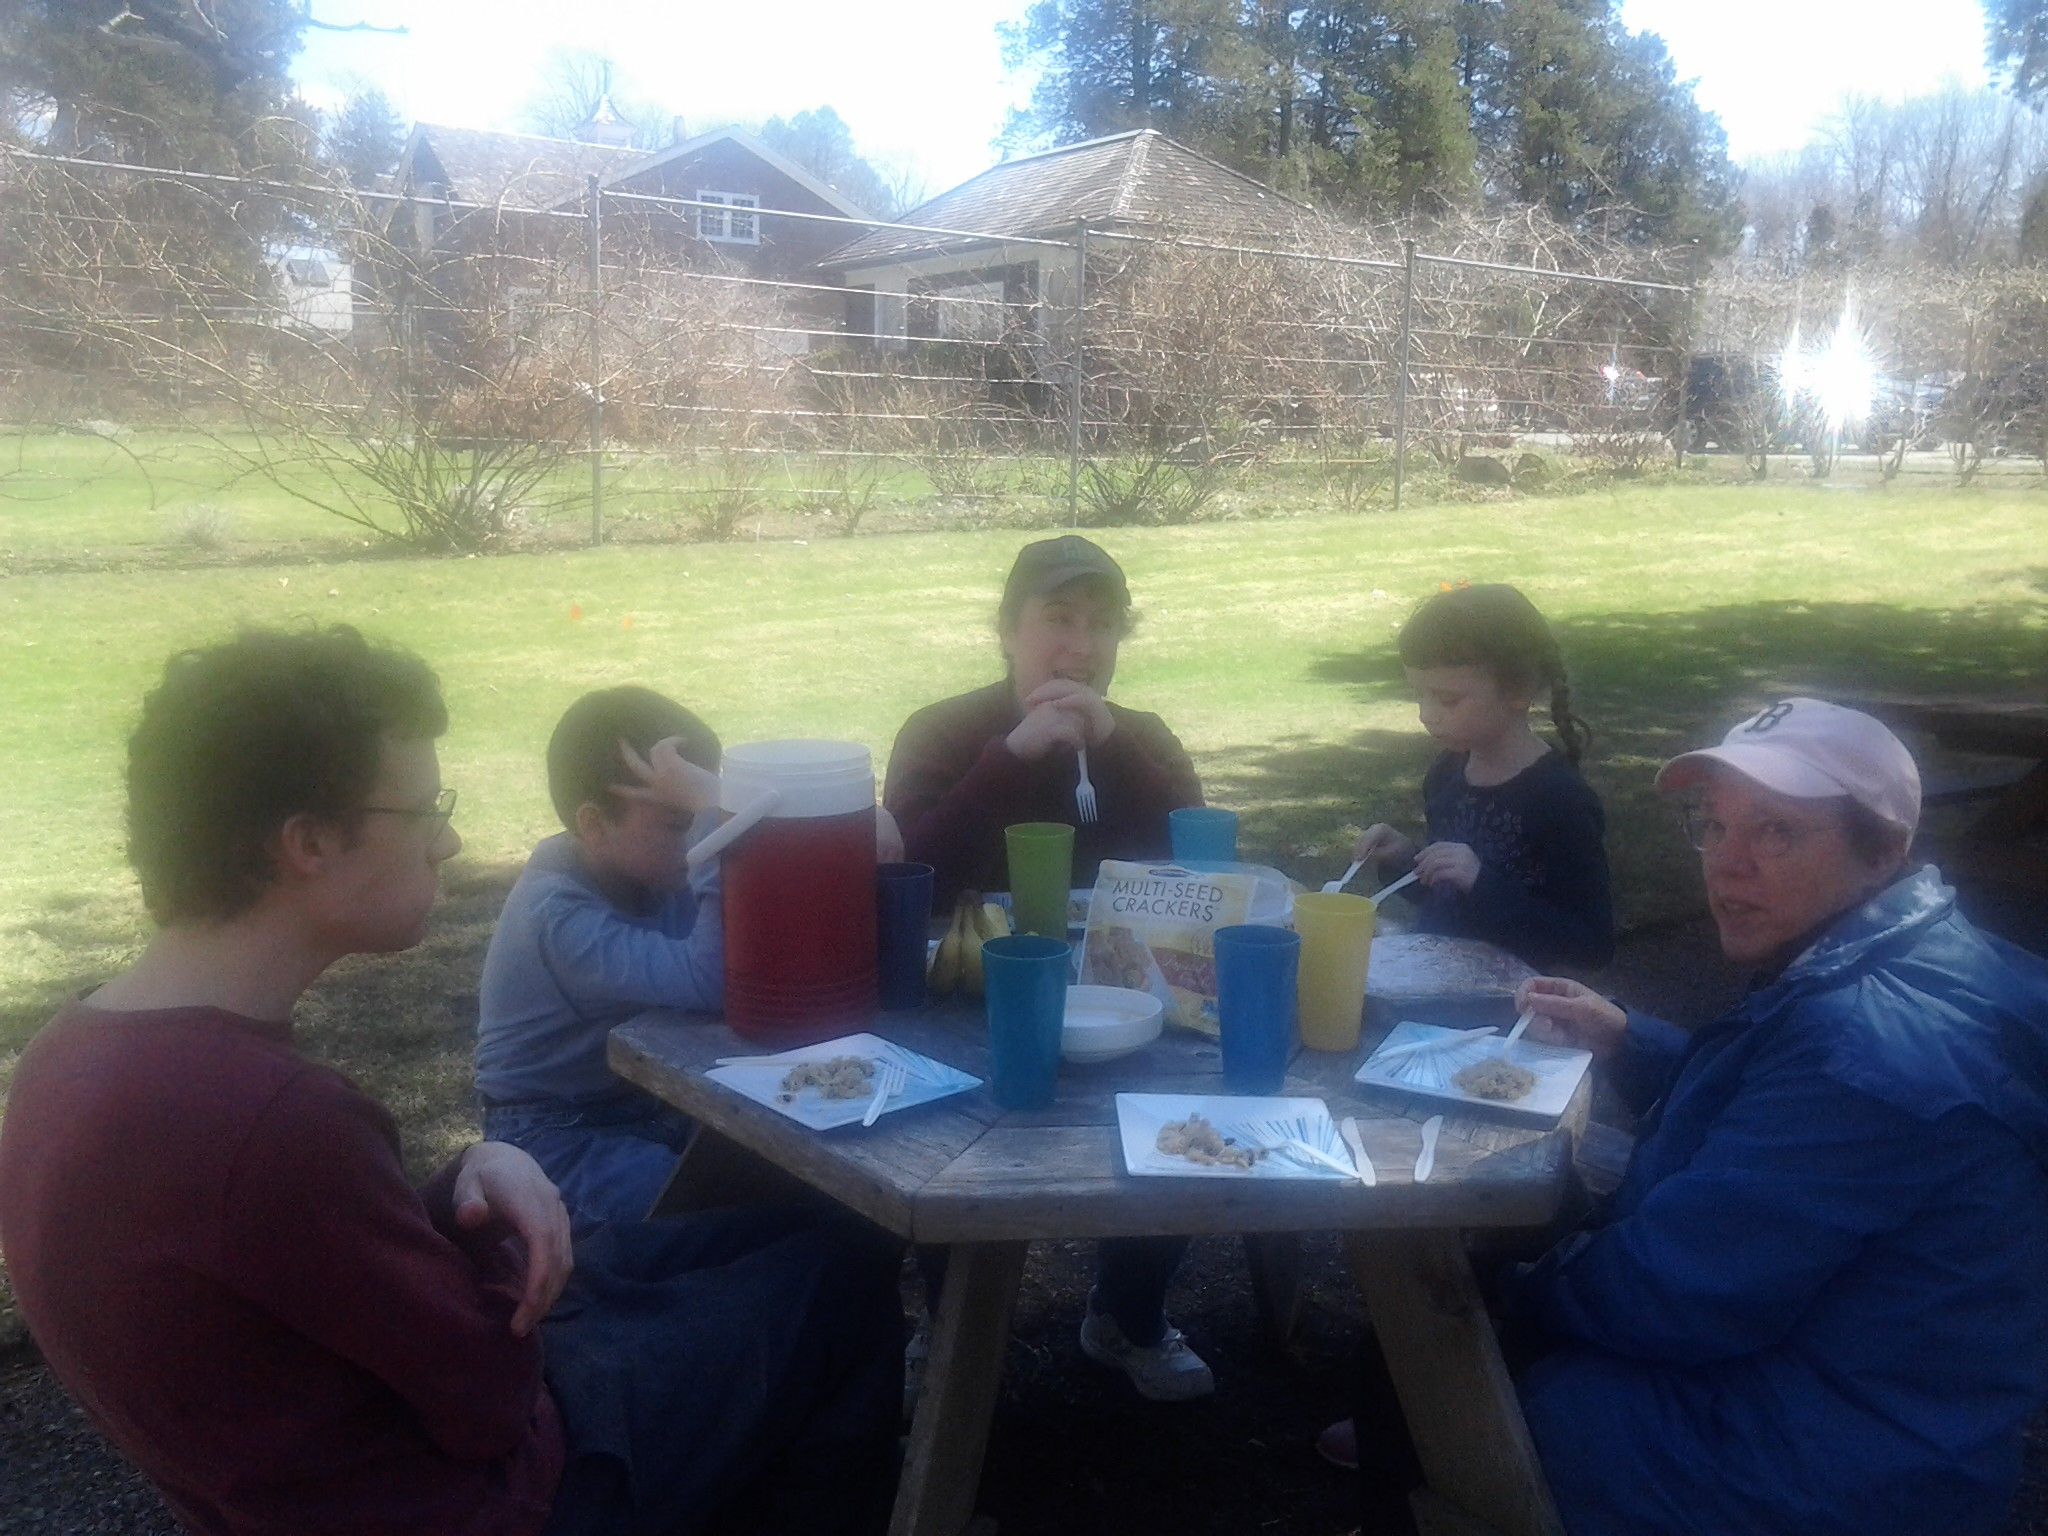 Ben, M, Me, K and Mom eating a gf picnic at Blythwold Mansion and Gardens